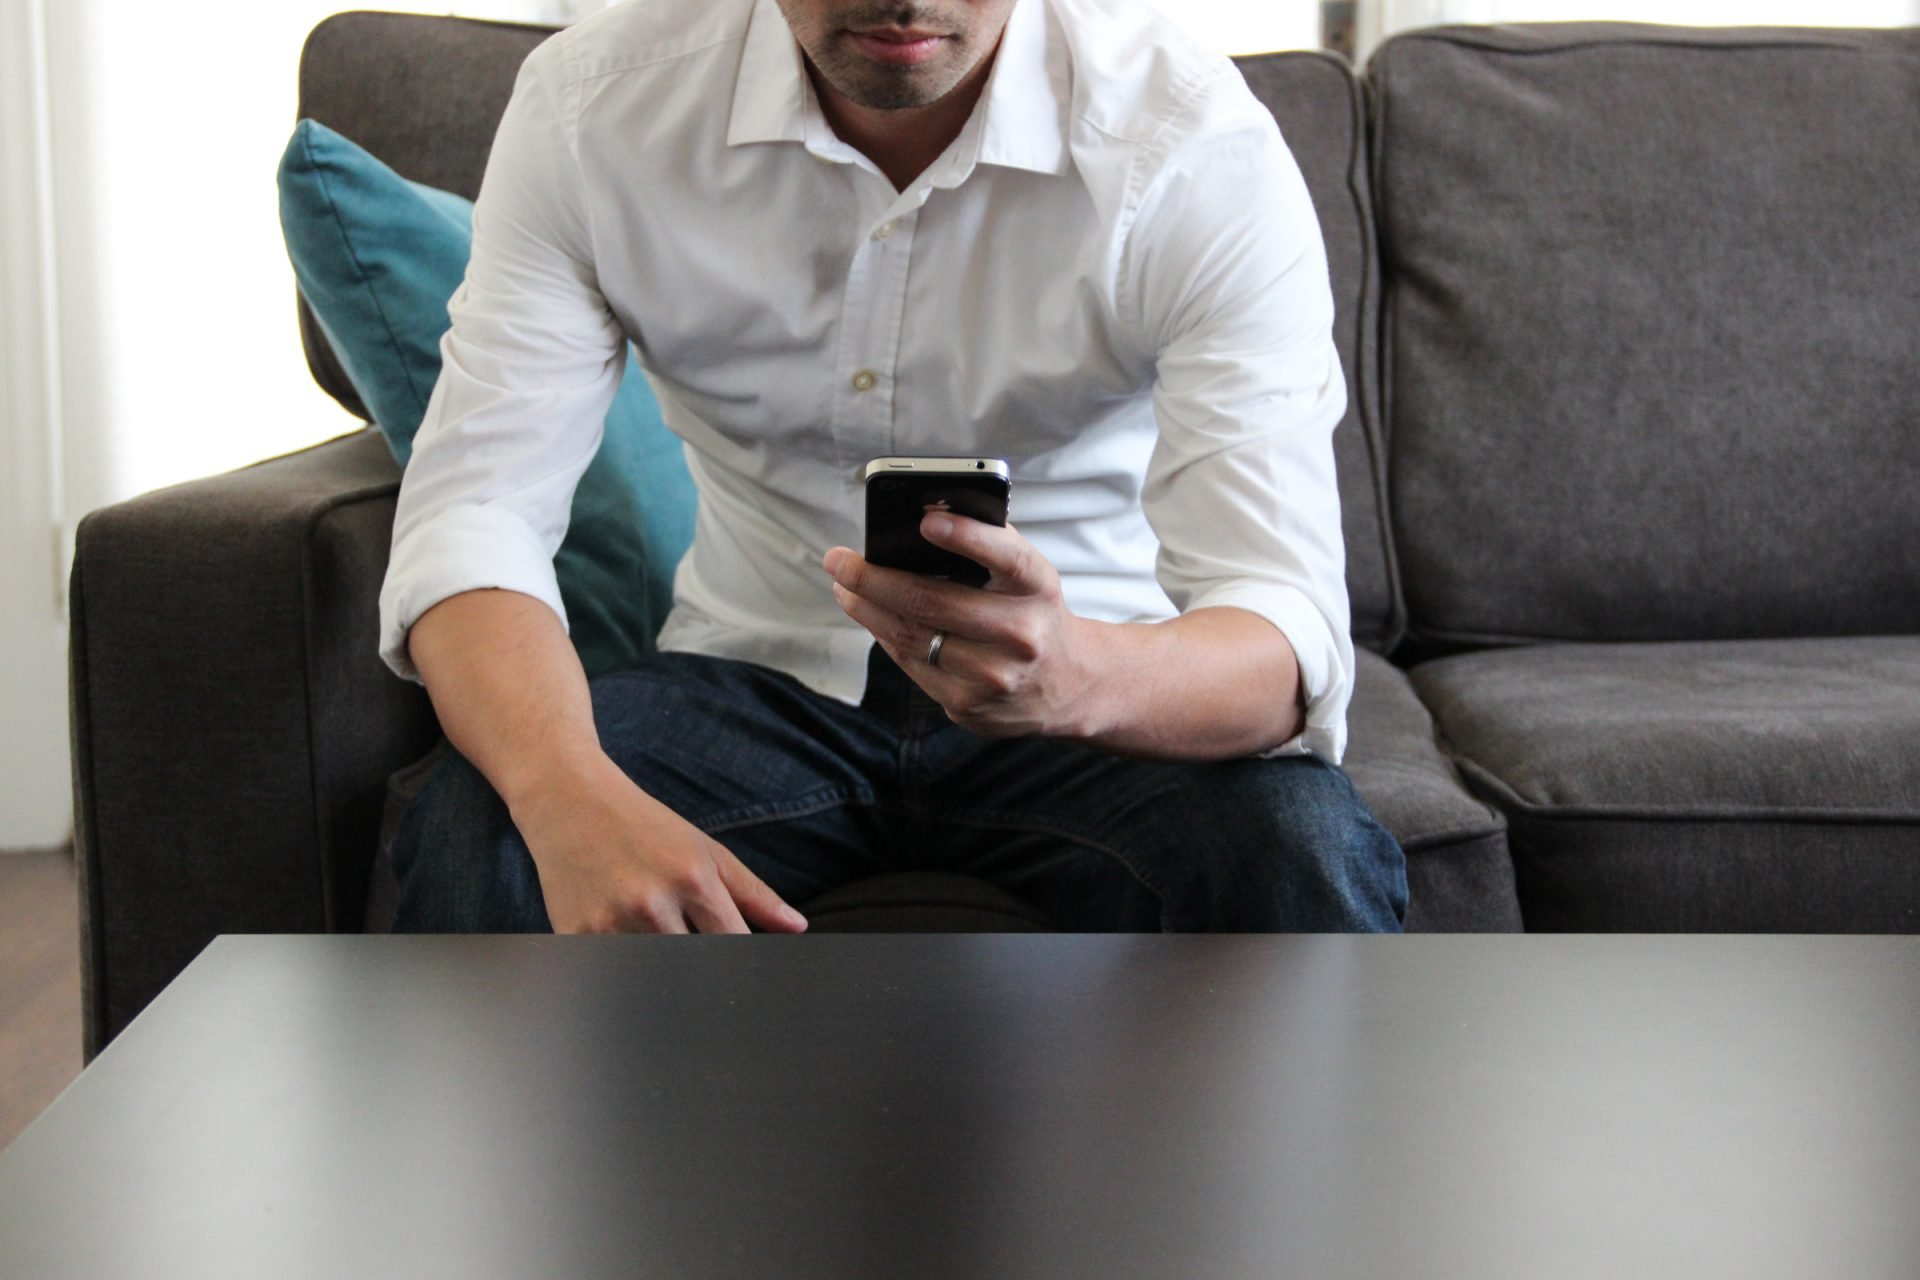 Man Sitting on Couch Using Phone